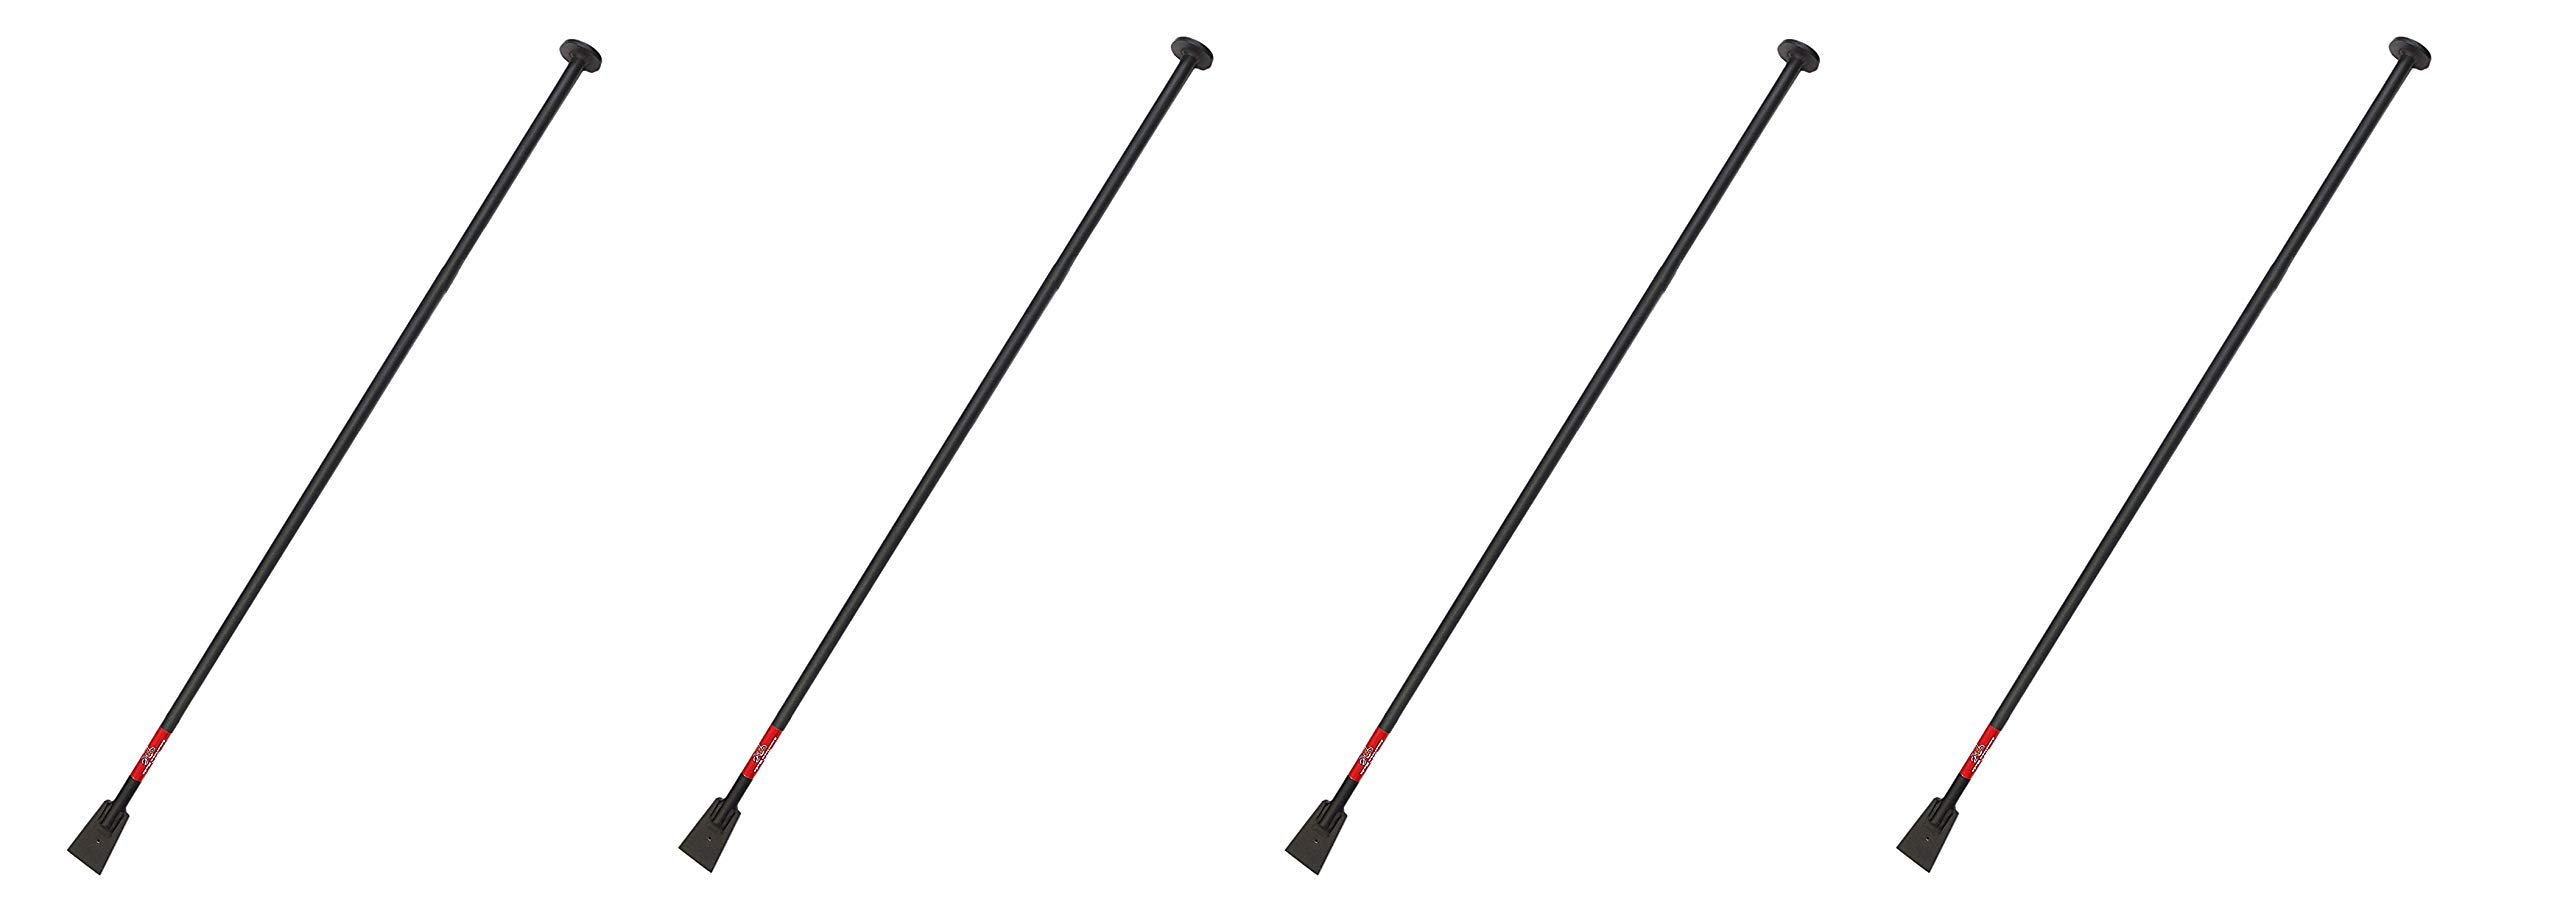 Bully Tools 92539 Steel Tamping and Digging Bar, 68-Inch (Pack of 4)